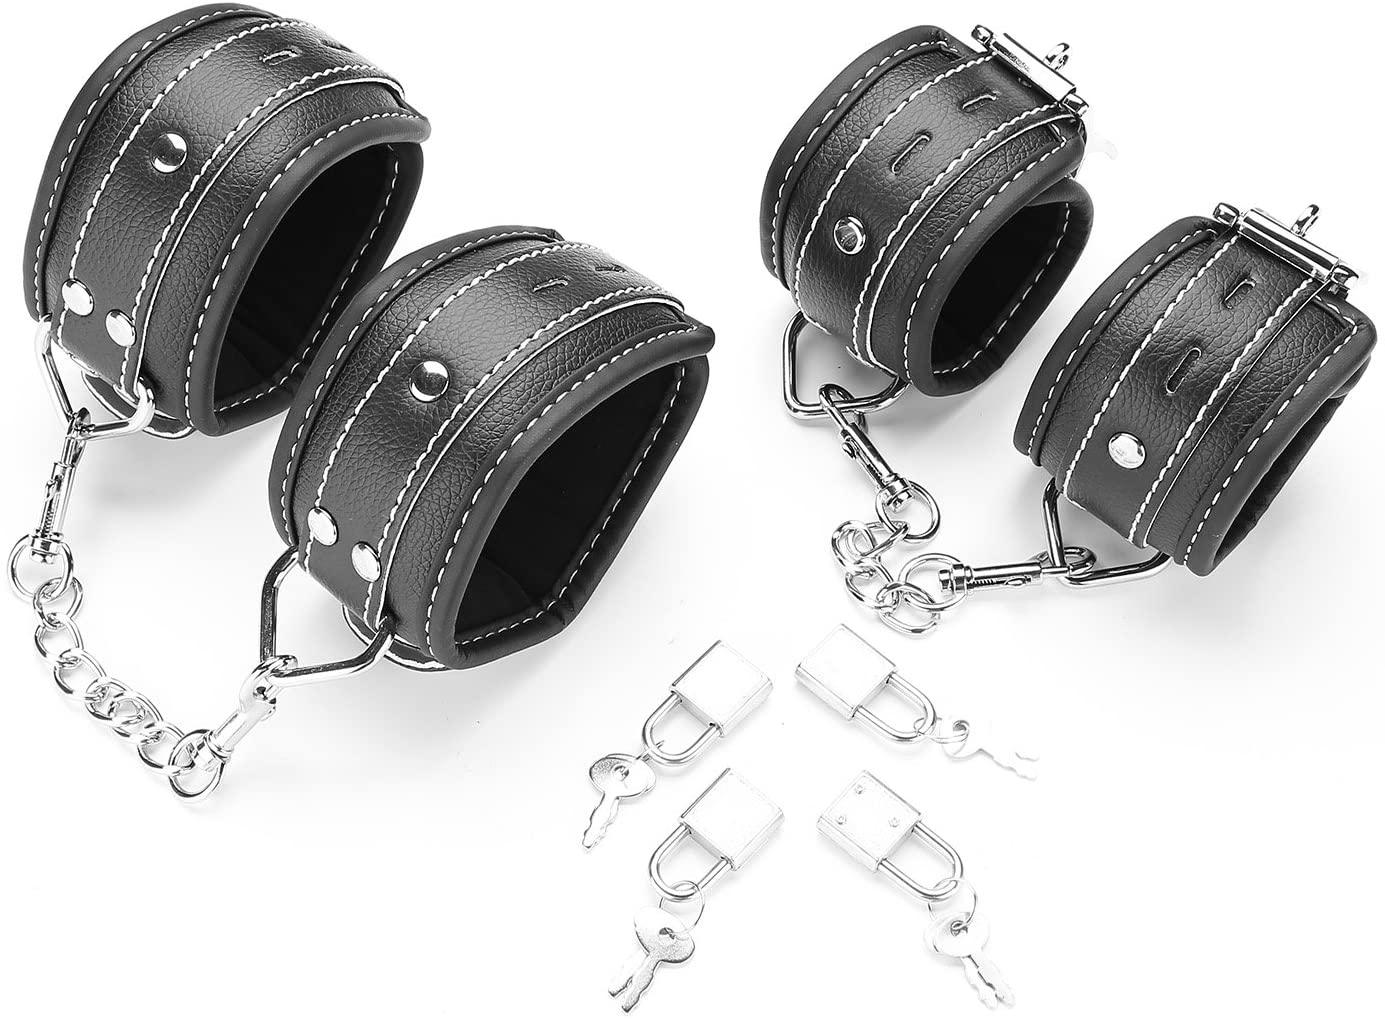 Black exreizst 4 Adjustable Ankle-Wrist Leather Cuffs Soft Straps Set with 2 Metal Chains